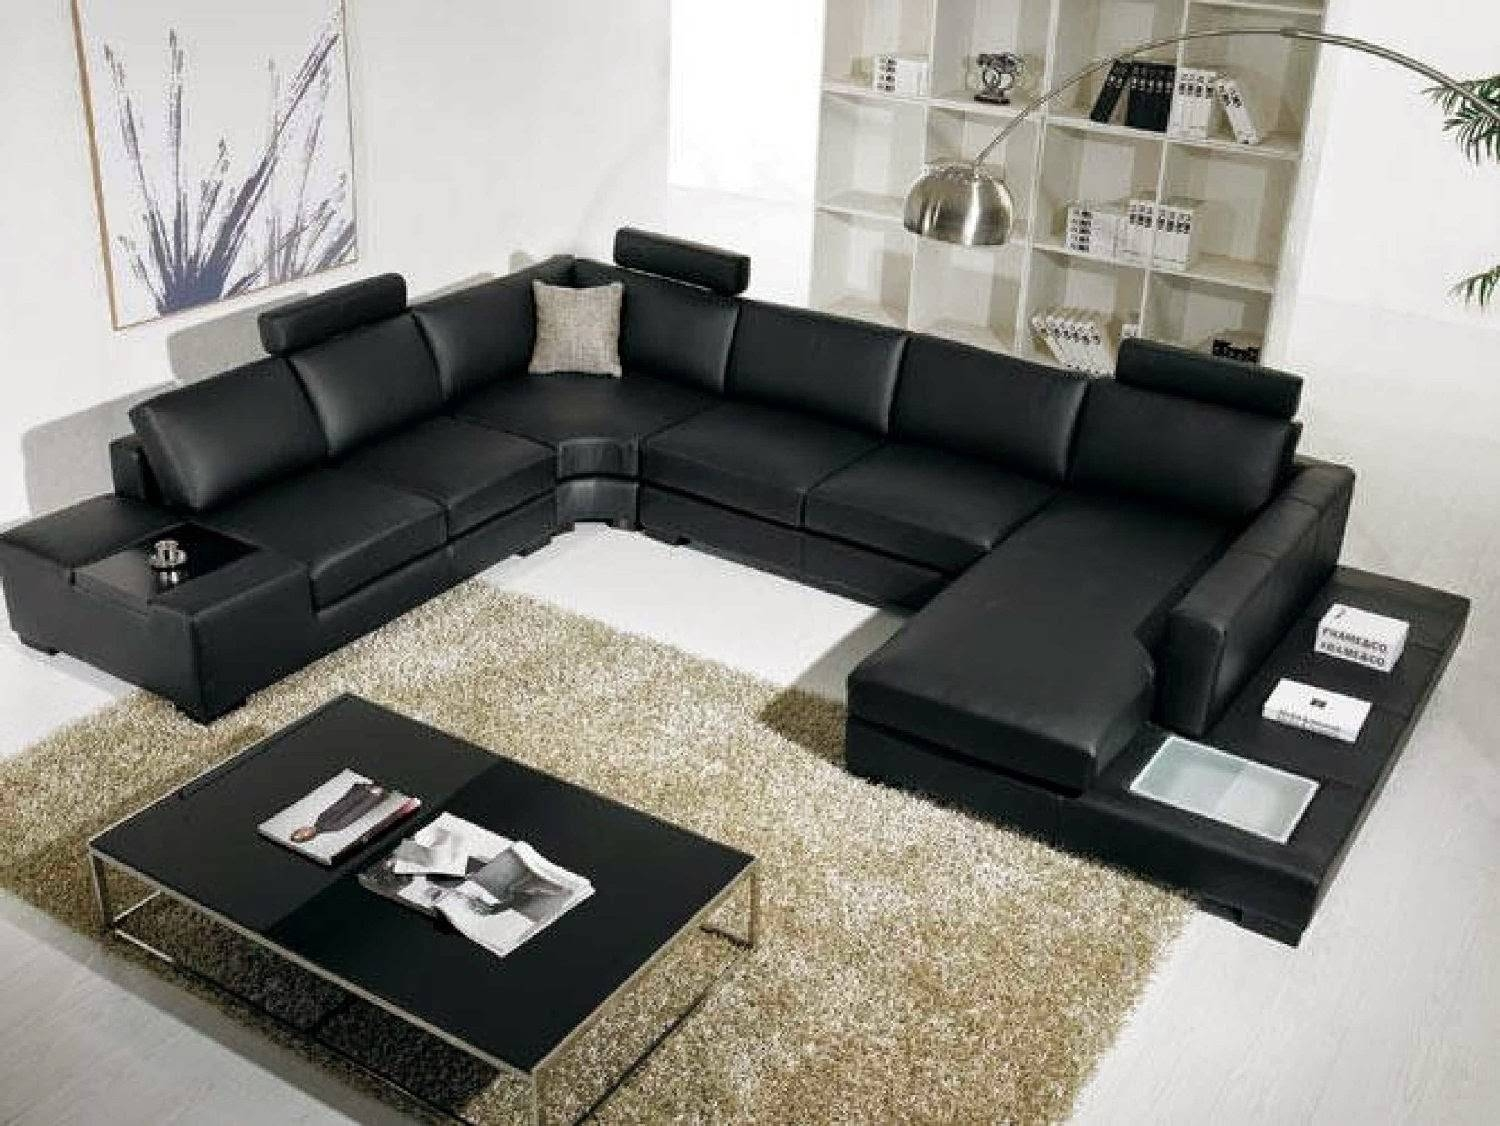 Leather Sofa Sectionals On Sale - Fjellkjeden inside Leather Sofa Sectionals for Sale (Image 15 of 30)